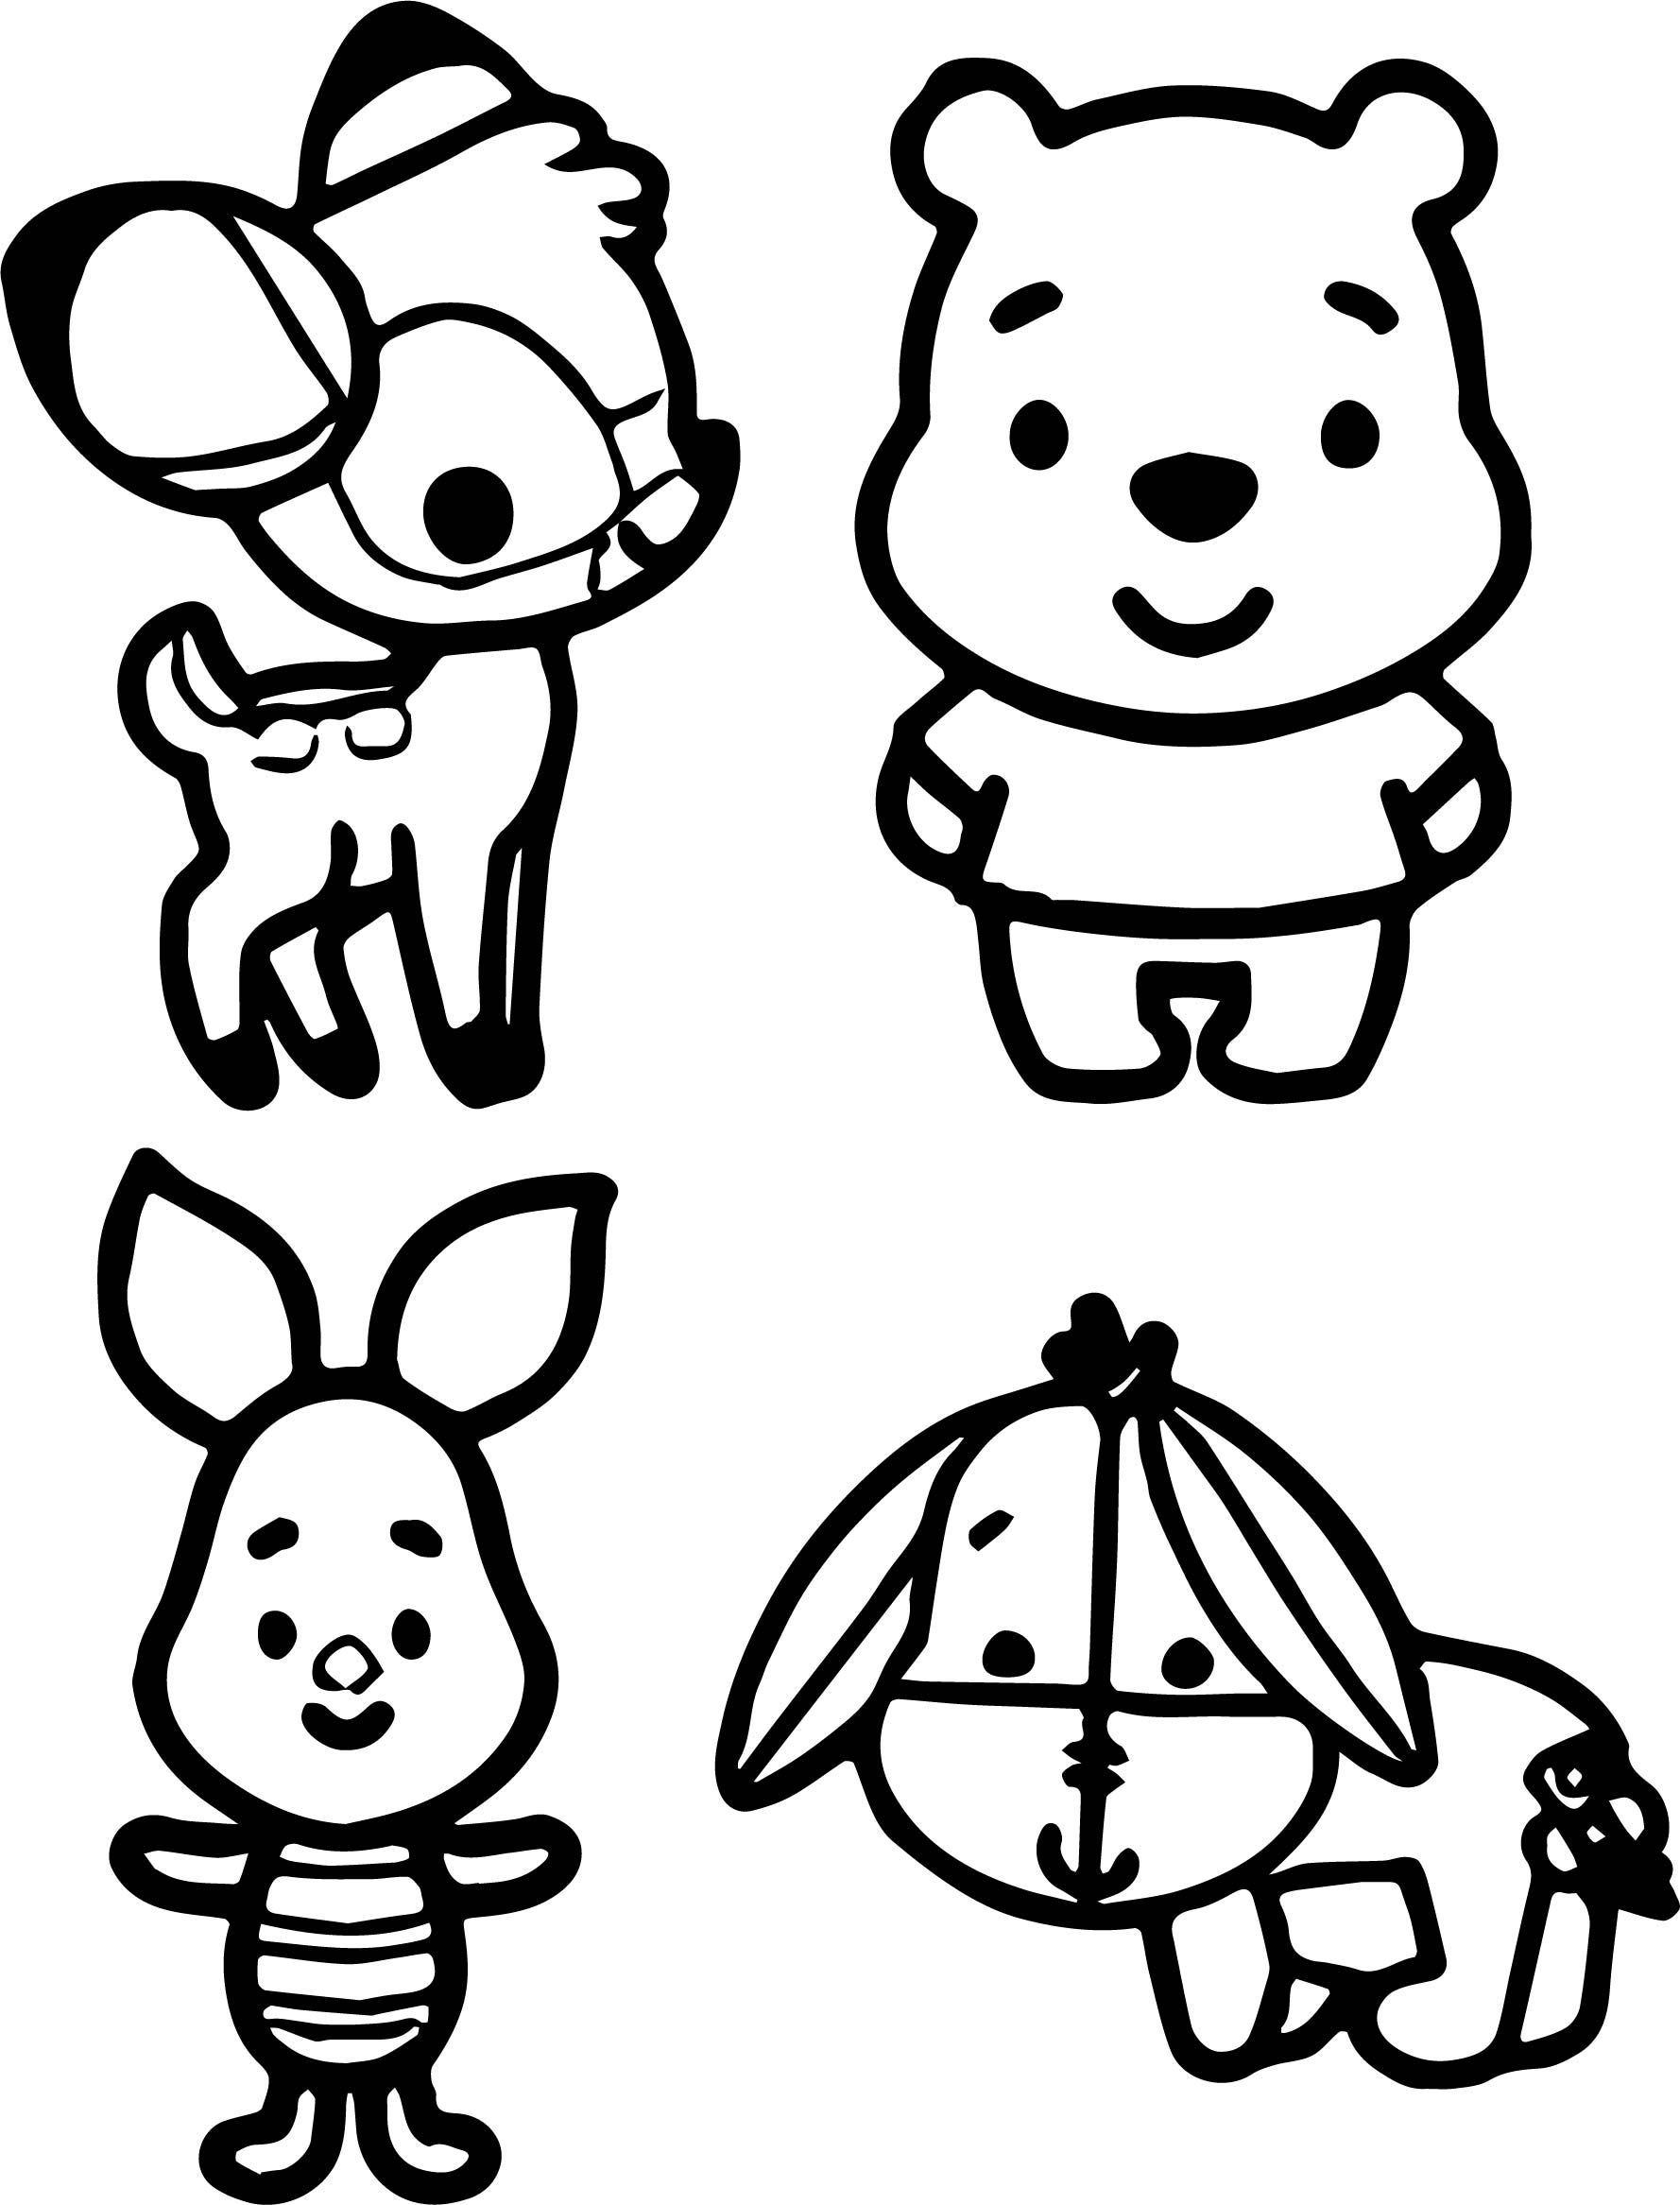 Baby Winnie The Pooh And Tigger Coloring Pages With Awesome Baby Winnie The Pooh Disney Color Winnie The Pooh Drawing Baby Coloring Pages Disney Coloring Pages